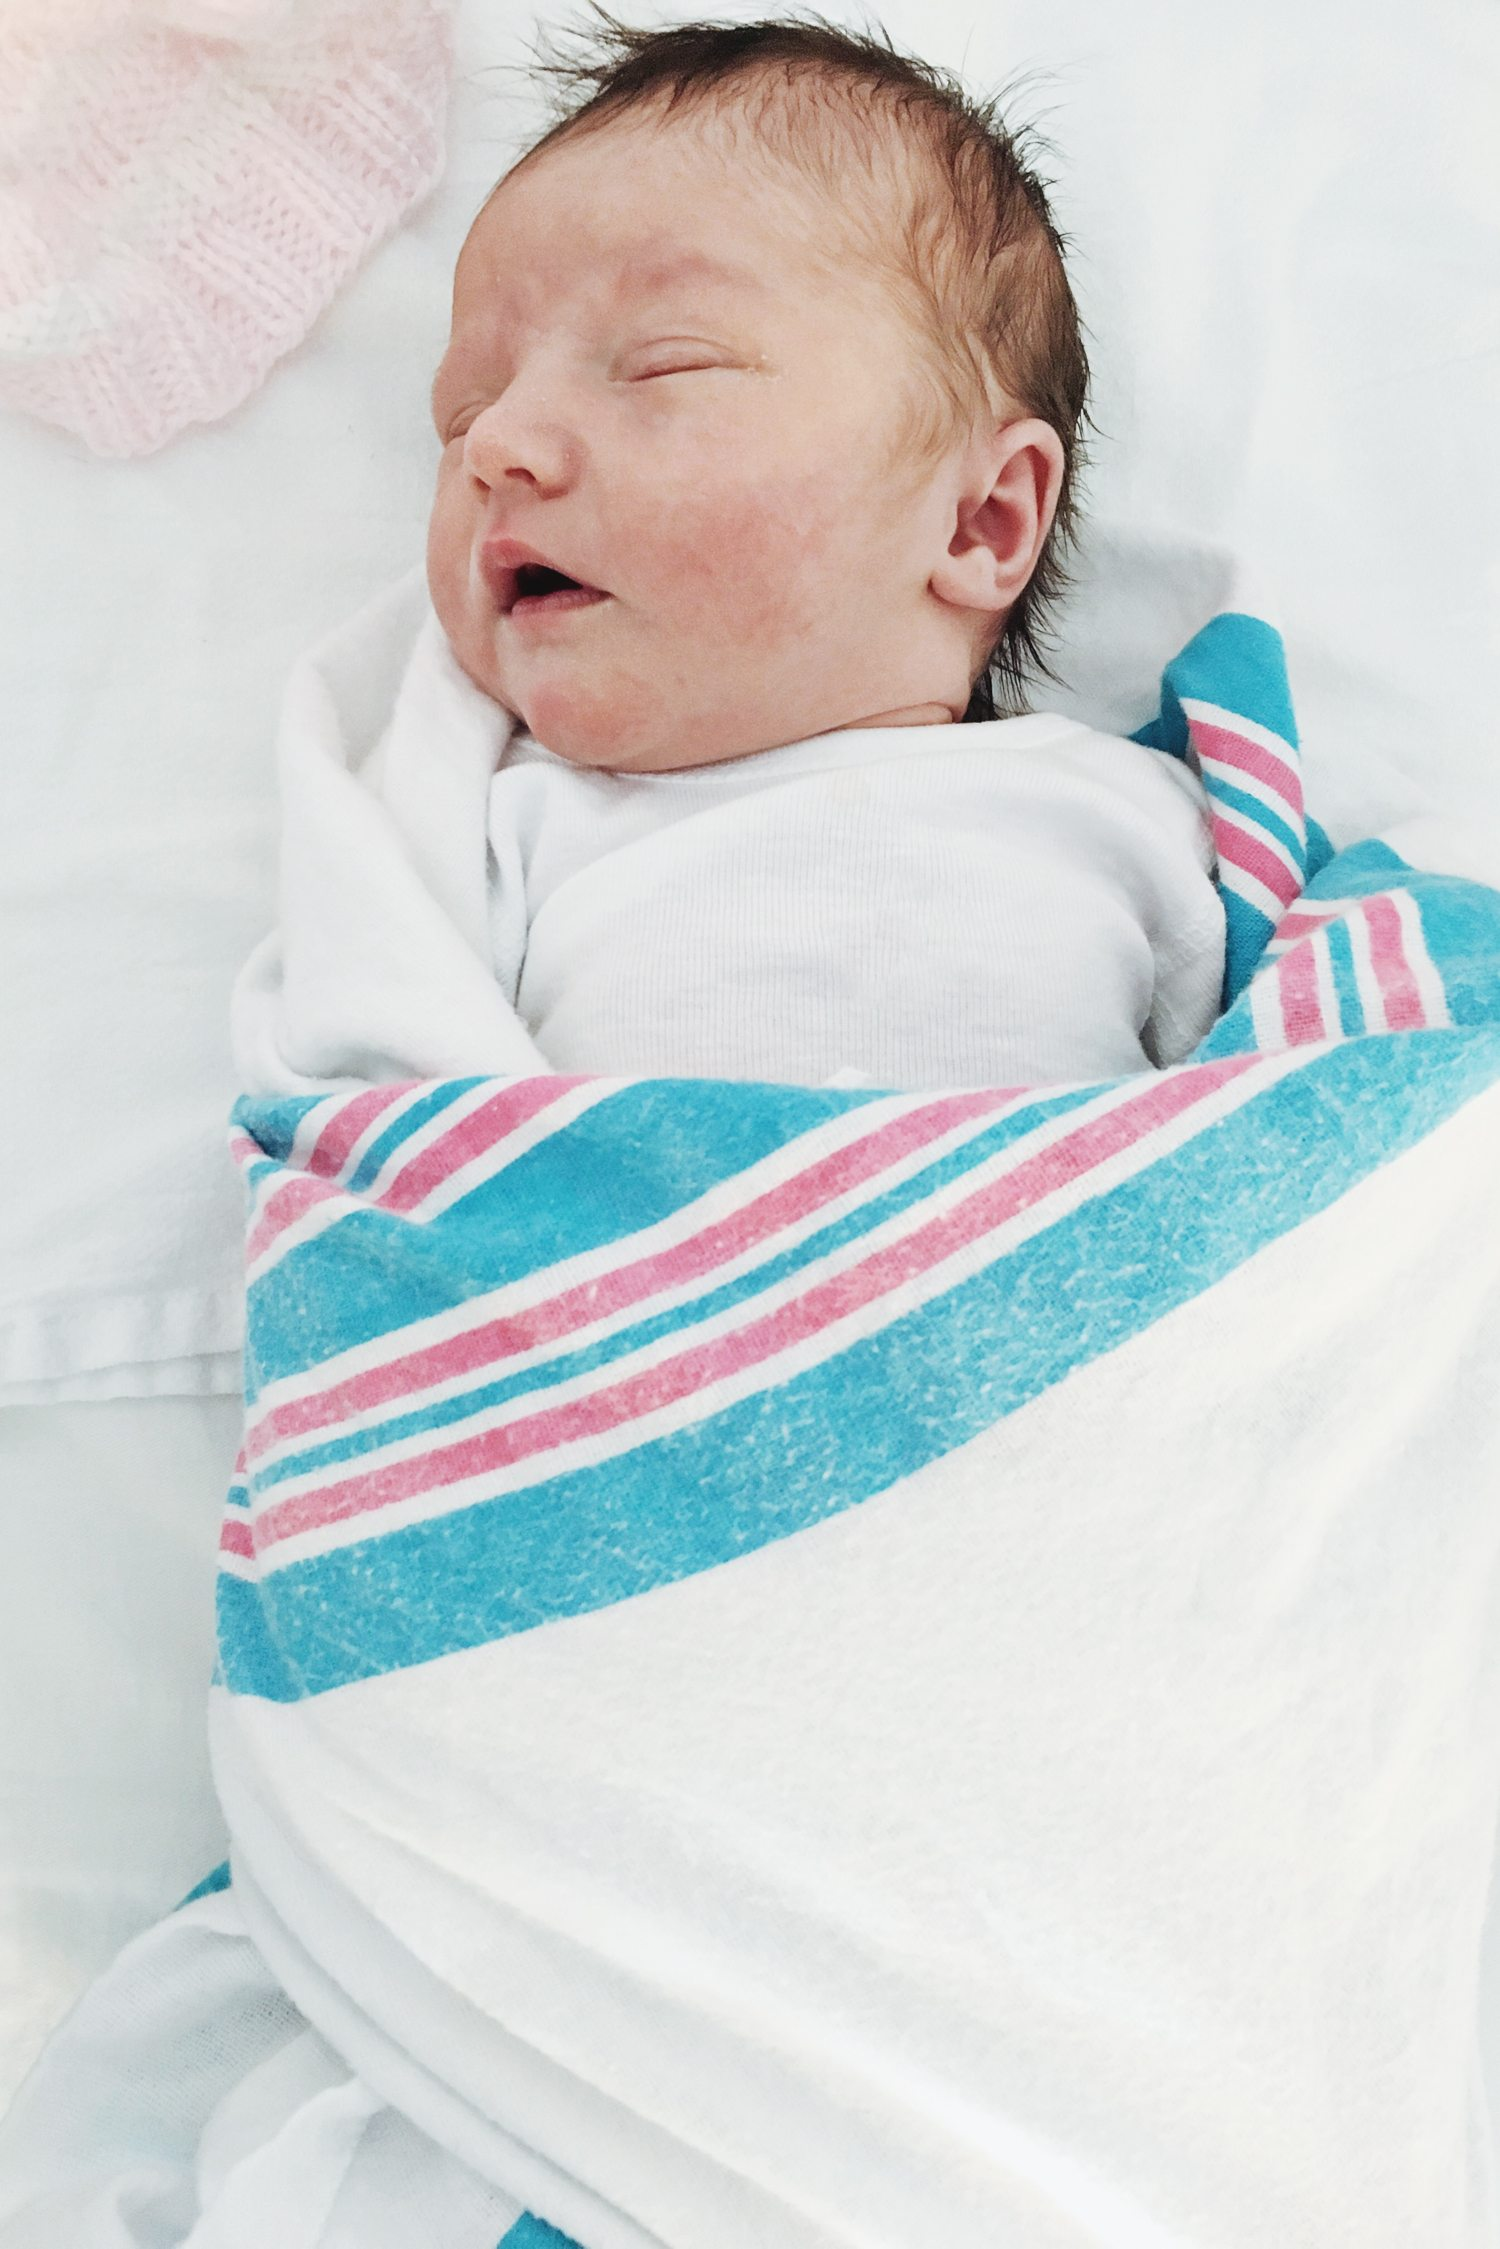 Welcome Emerson - The Sweetest Baby from @cydconverse